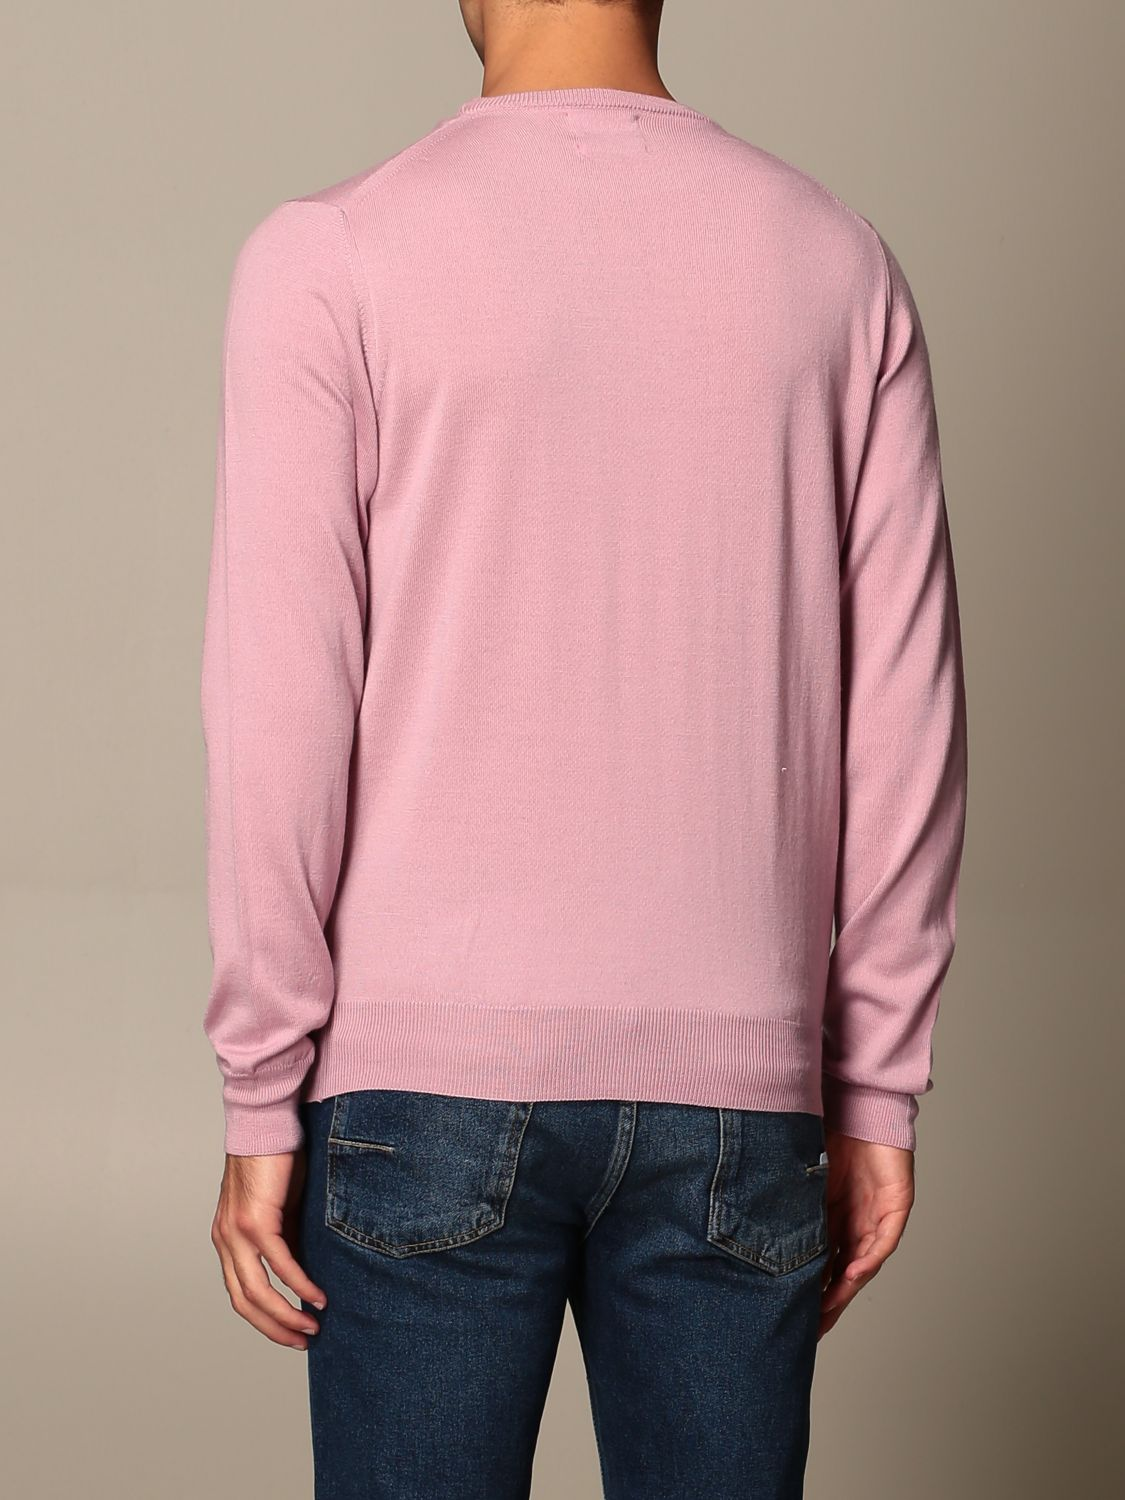 Pull Xc: Pull homme Xc poudre 2